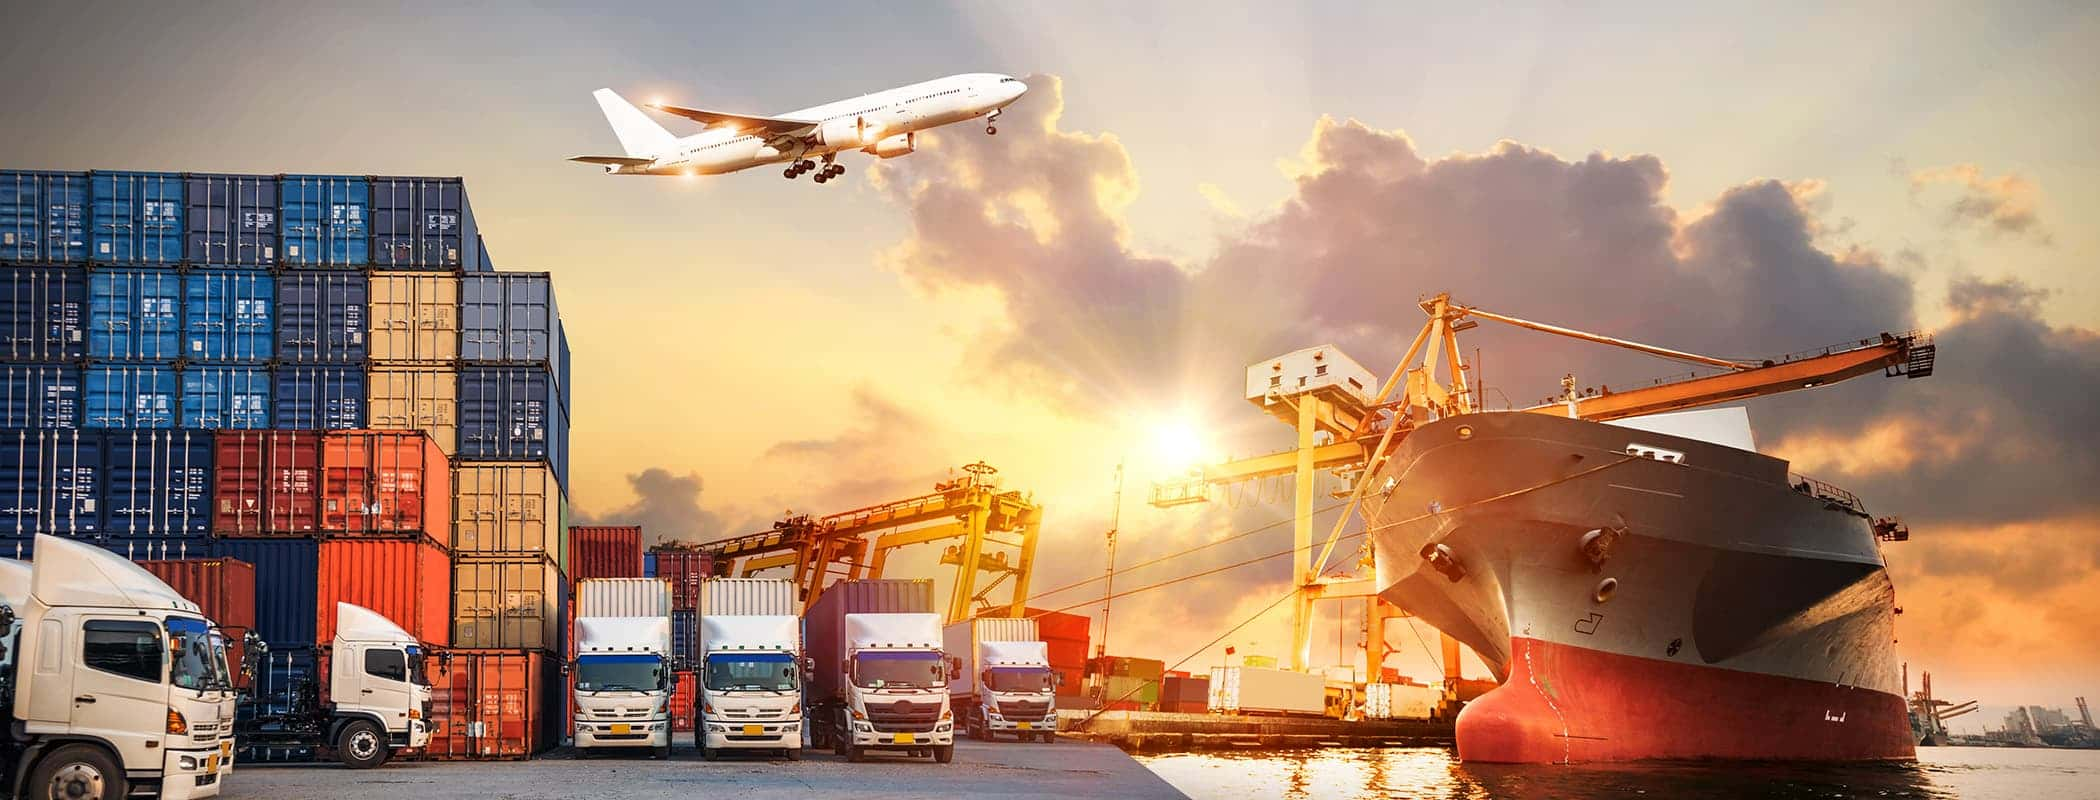 Redcargo brings solutions for freight, cargo, storage.